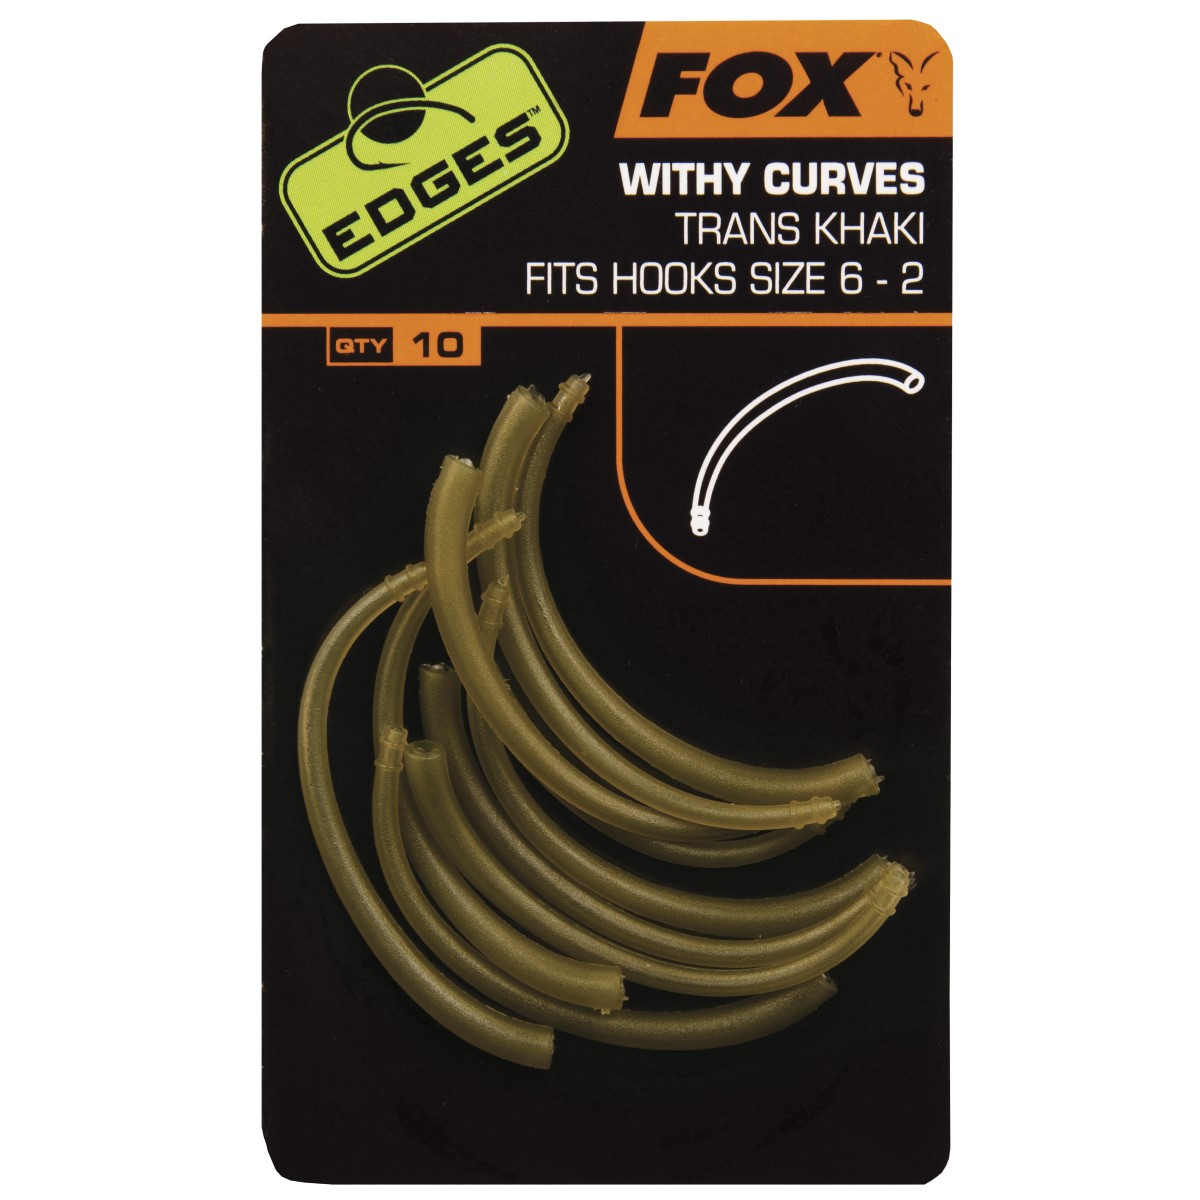 Алайнери Fox Edges Withy Curve Adaptor Trans Khaki